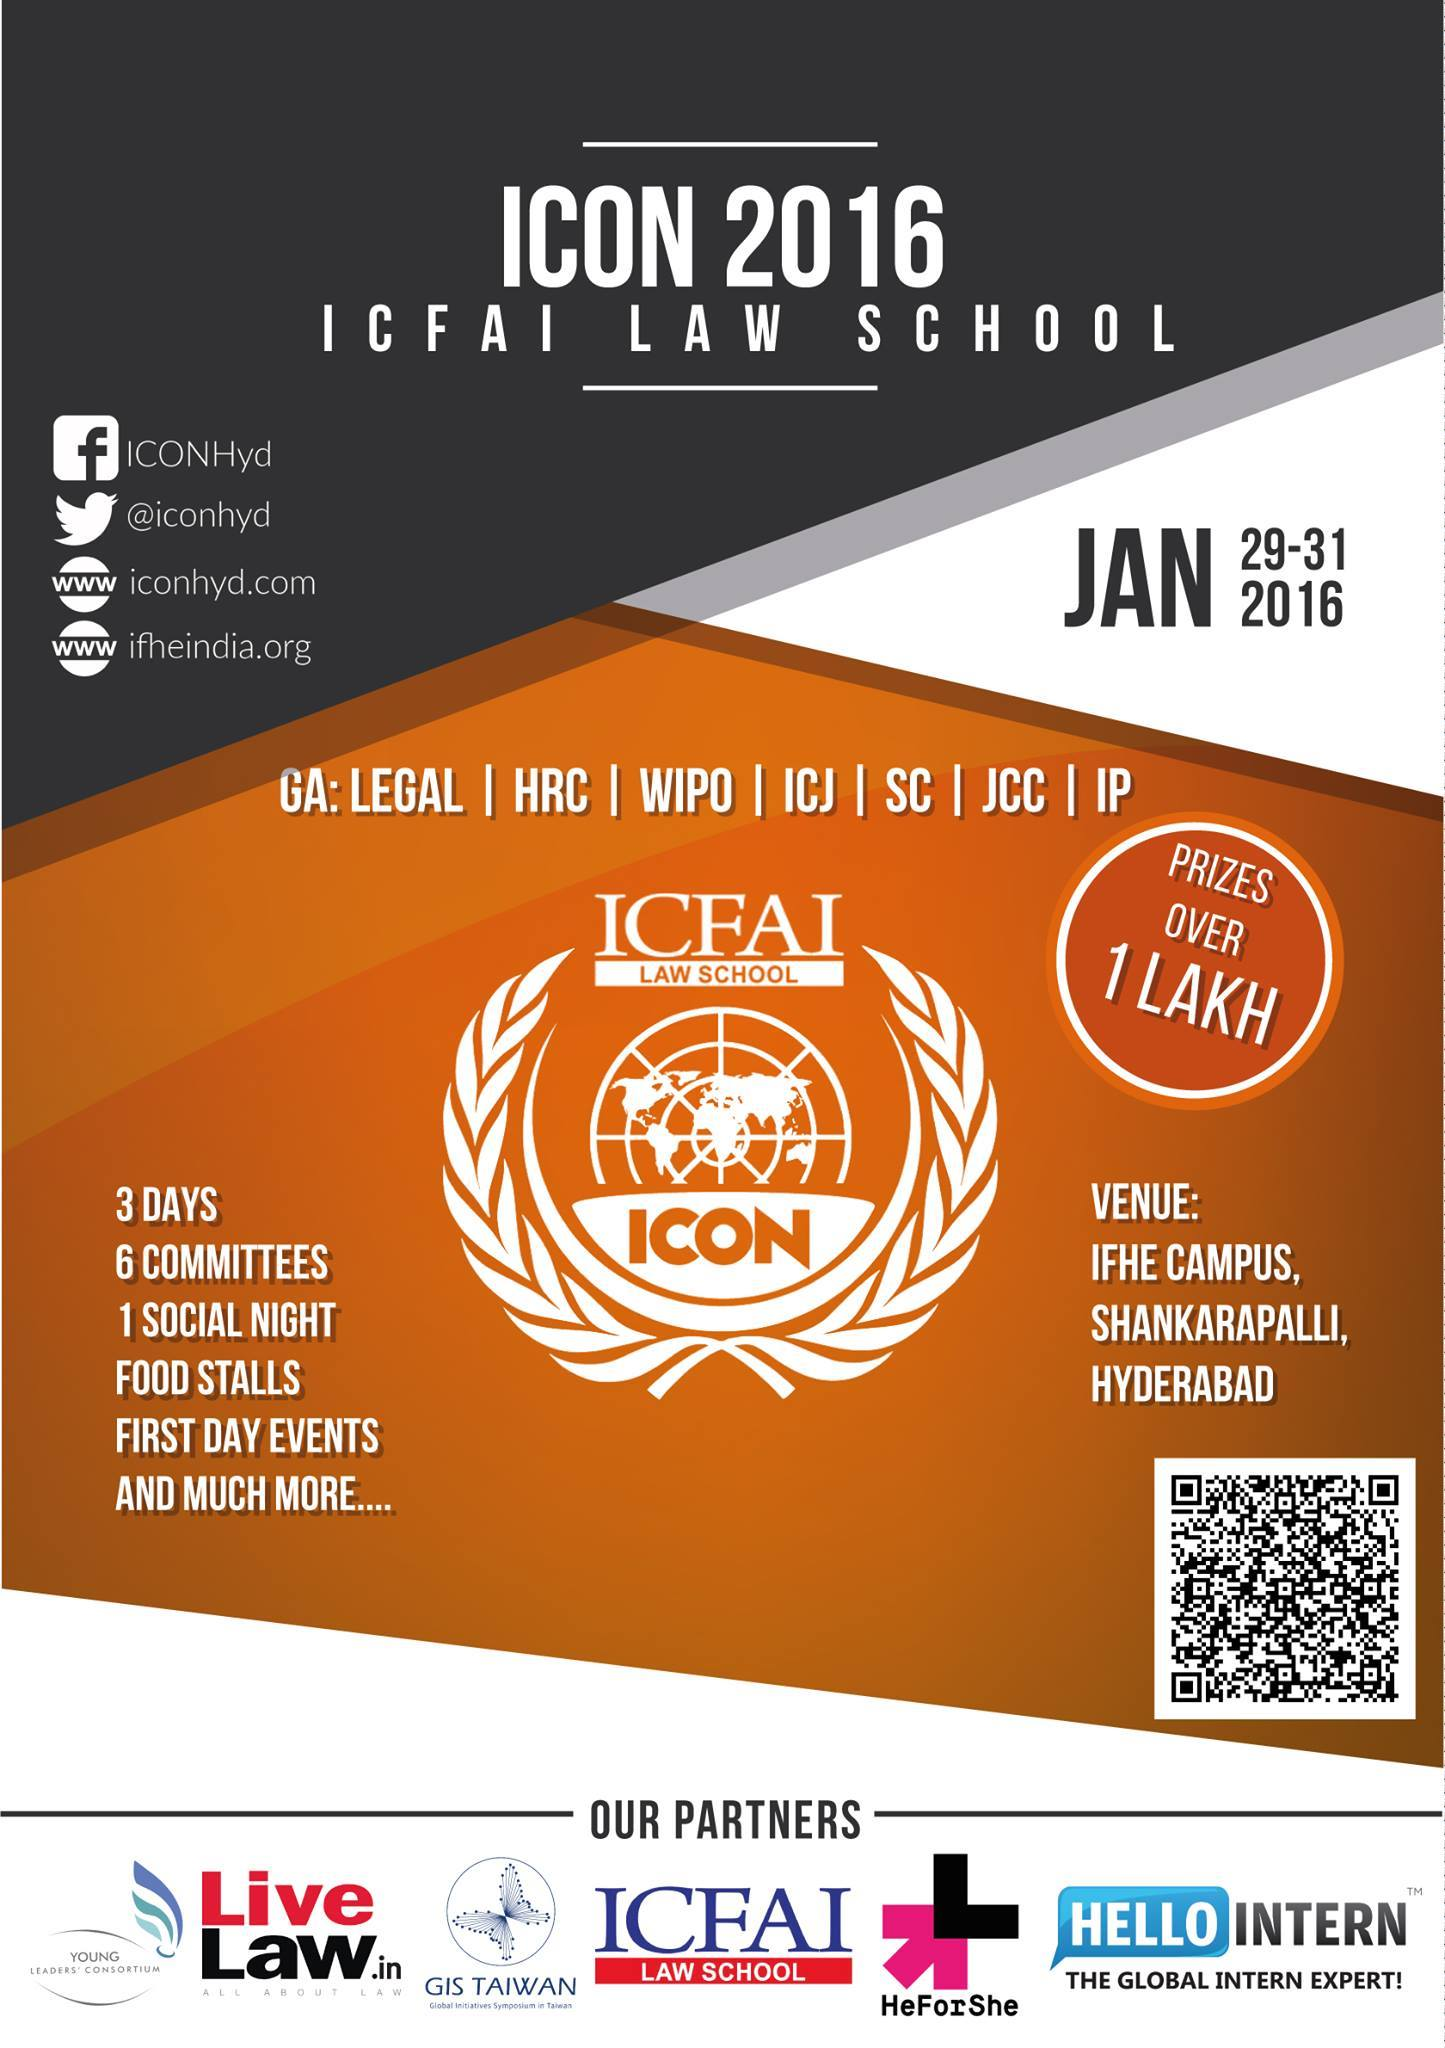 ICFAI Conference of Nations